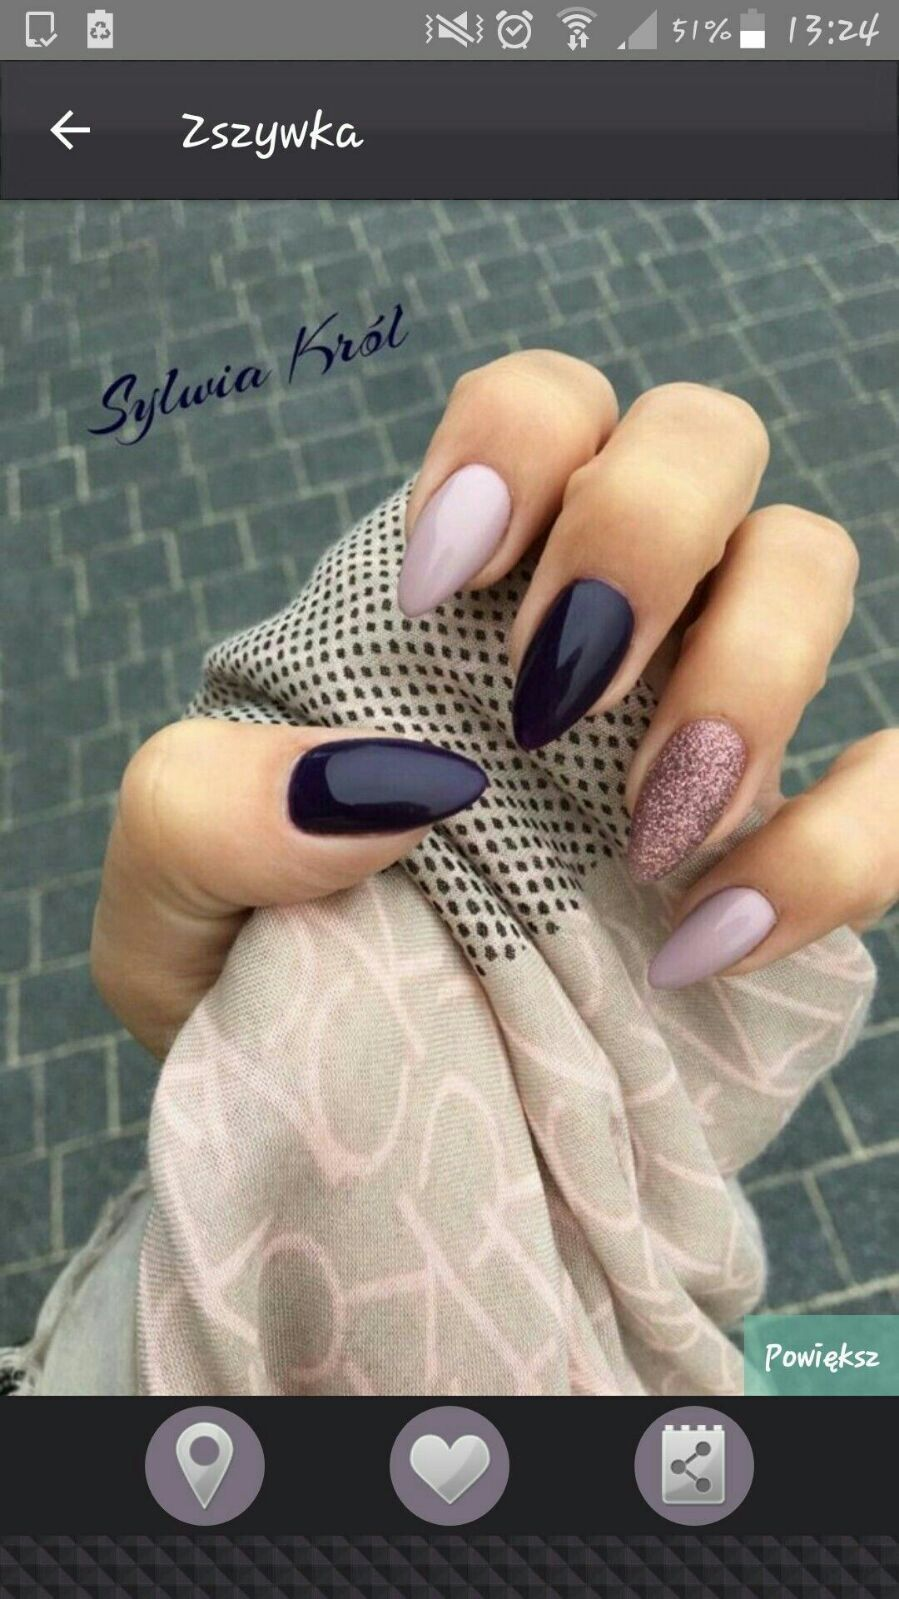 Pin by ana-maria ion oprisan on fashion | Pinterest | Sick, Manicure ...